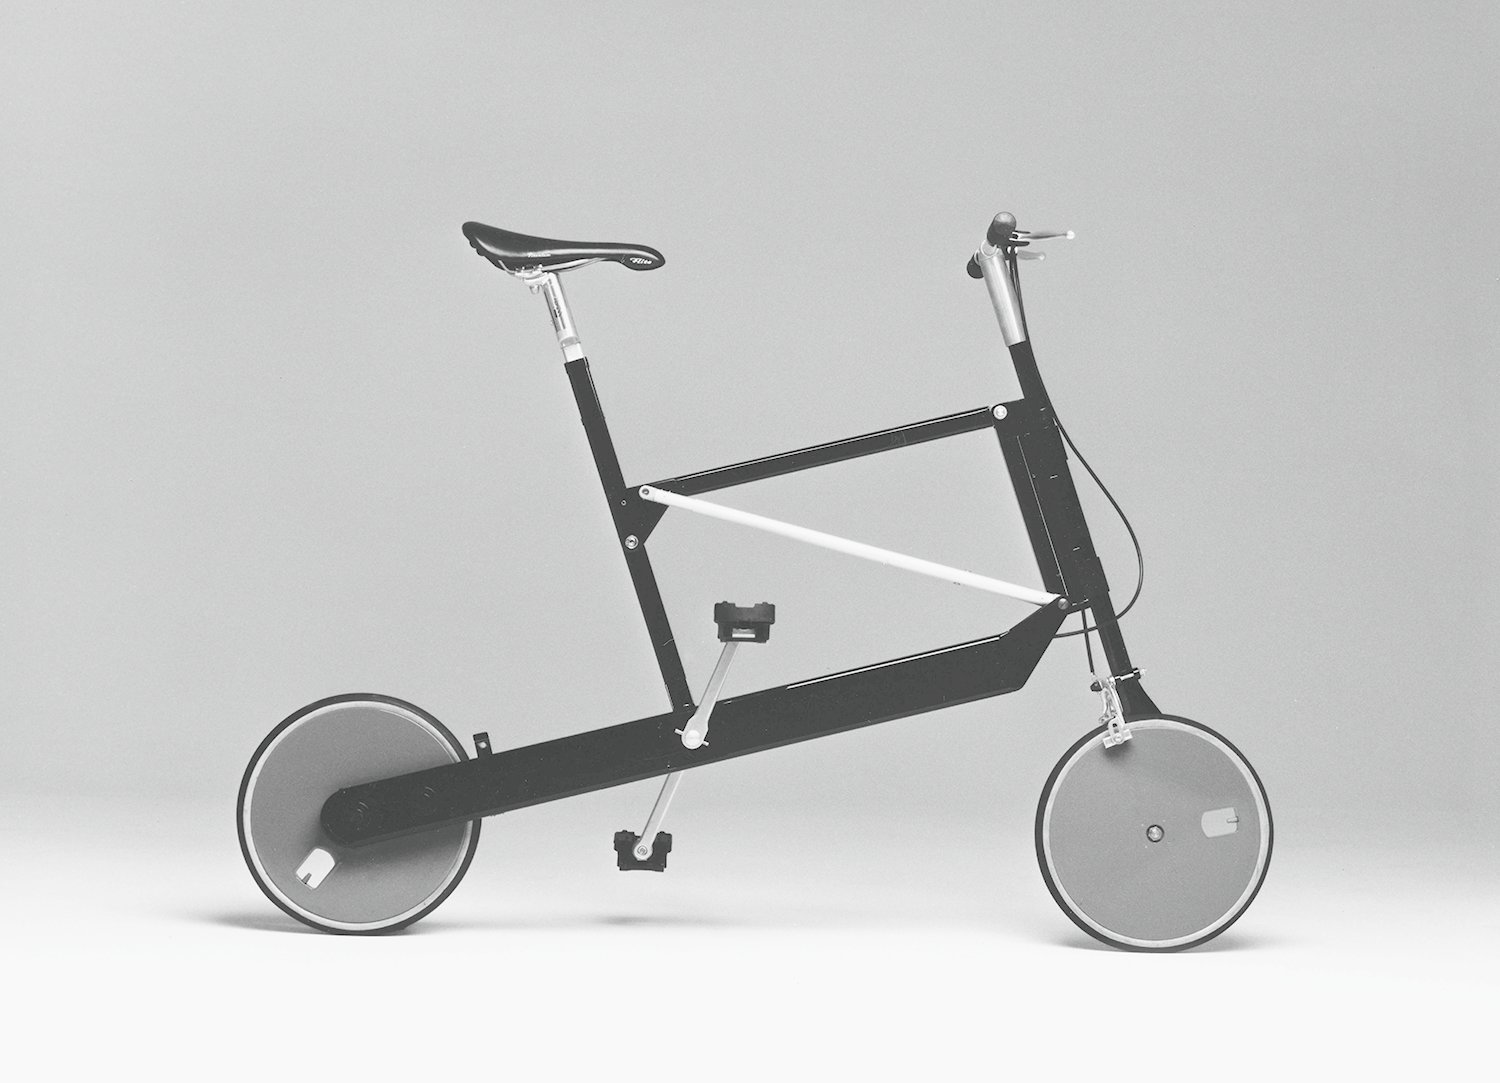 Zoombike, folding bicycle, Elettromontaggi, 2000.  Bicycle, Bicycle by Aileen Kwun from Only Richard Sapper Could Turn the Hairdryer Into a Masterpiece